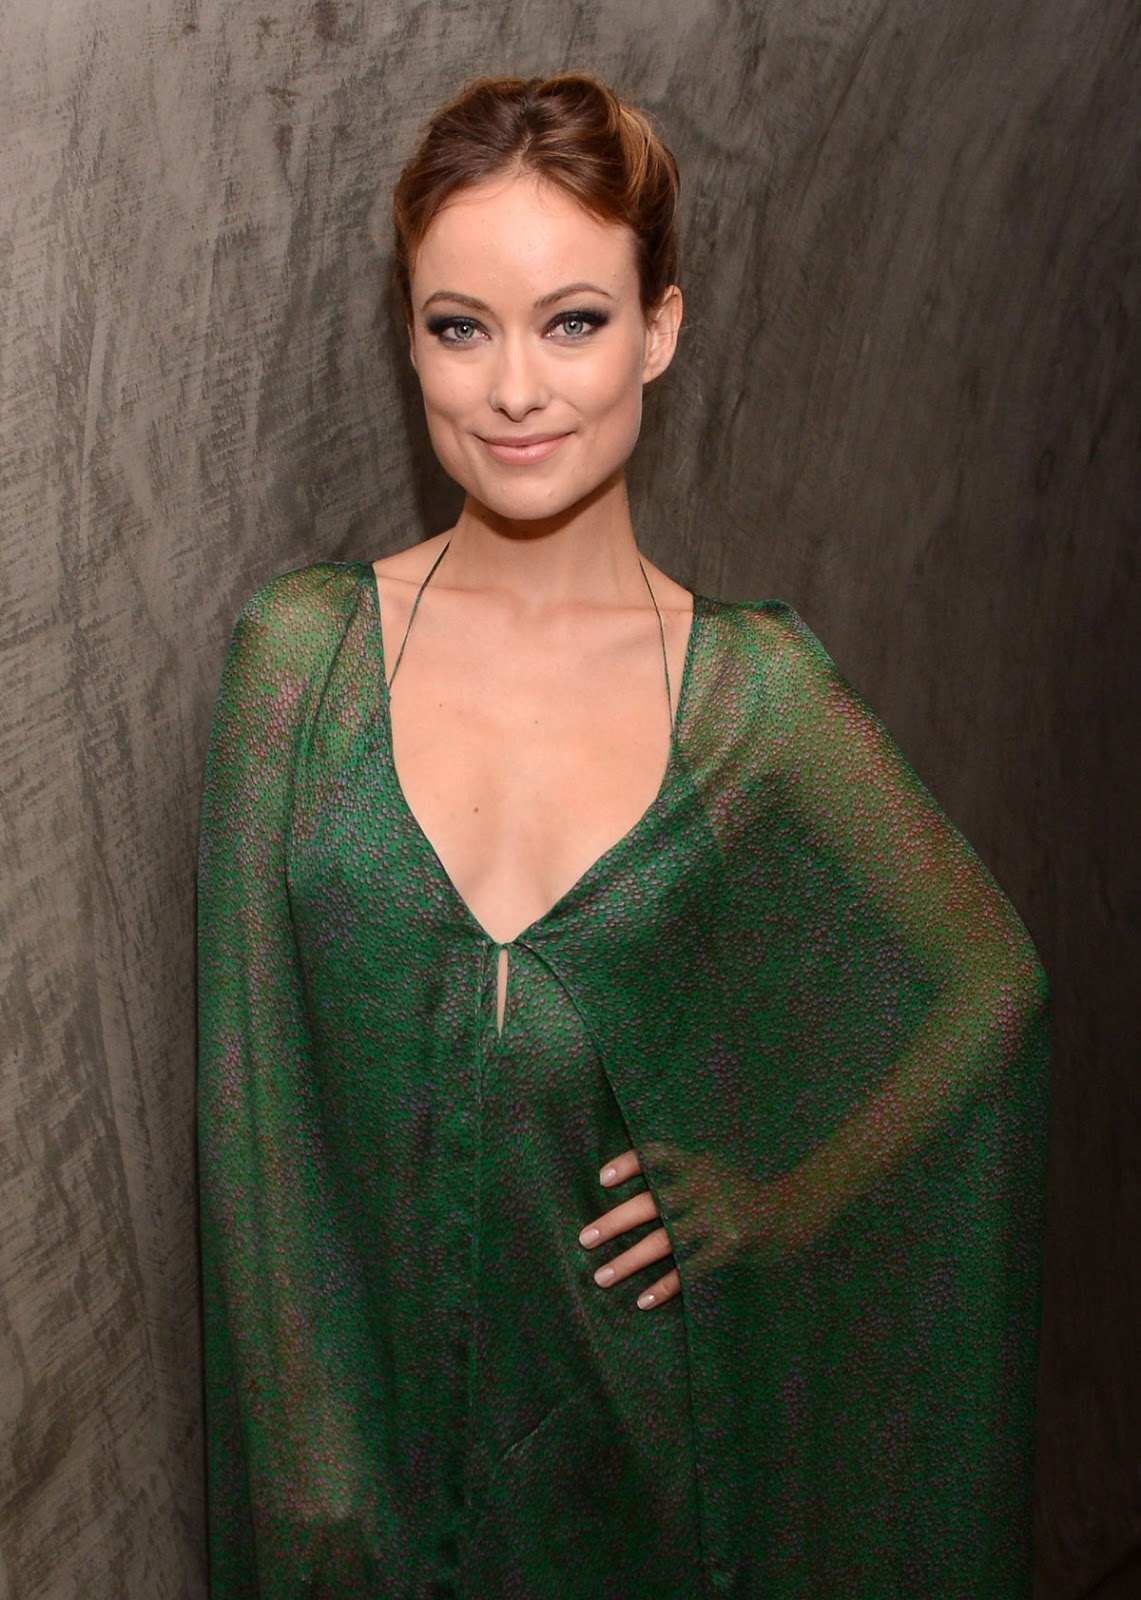 Olivia Wilde Profile And New Pictures 2013: Olivia Wilde Profile And New Pictures 2013